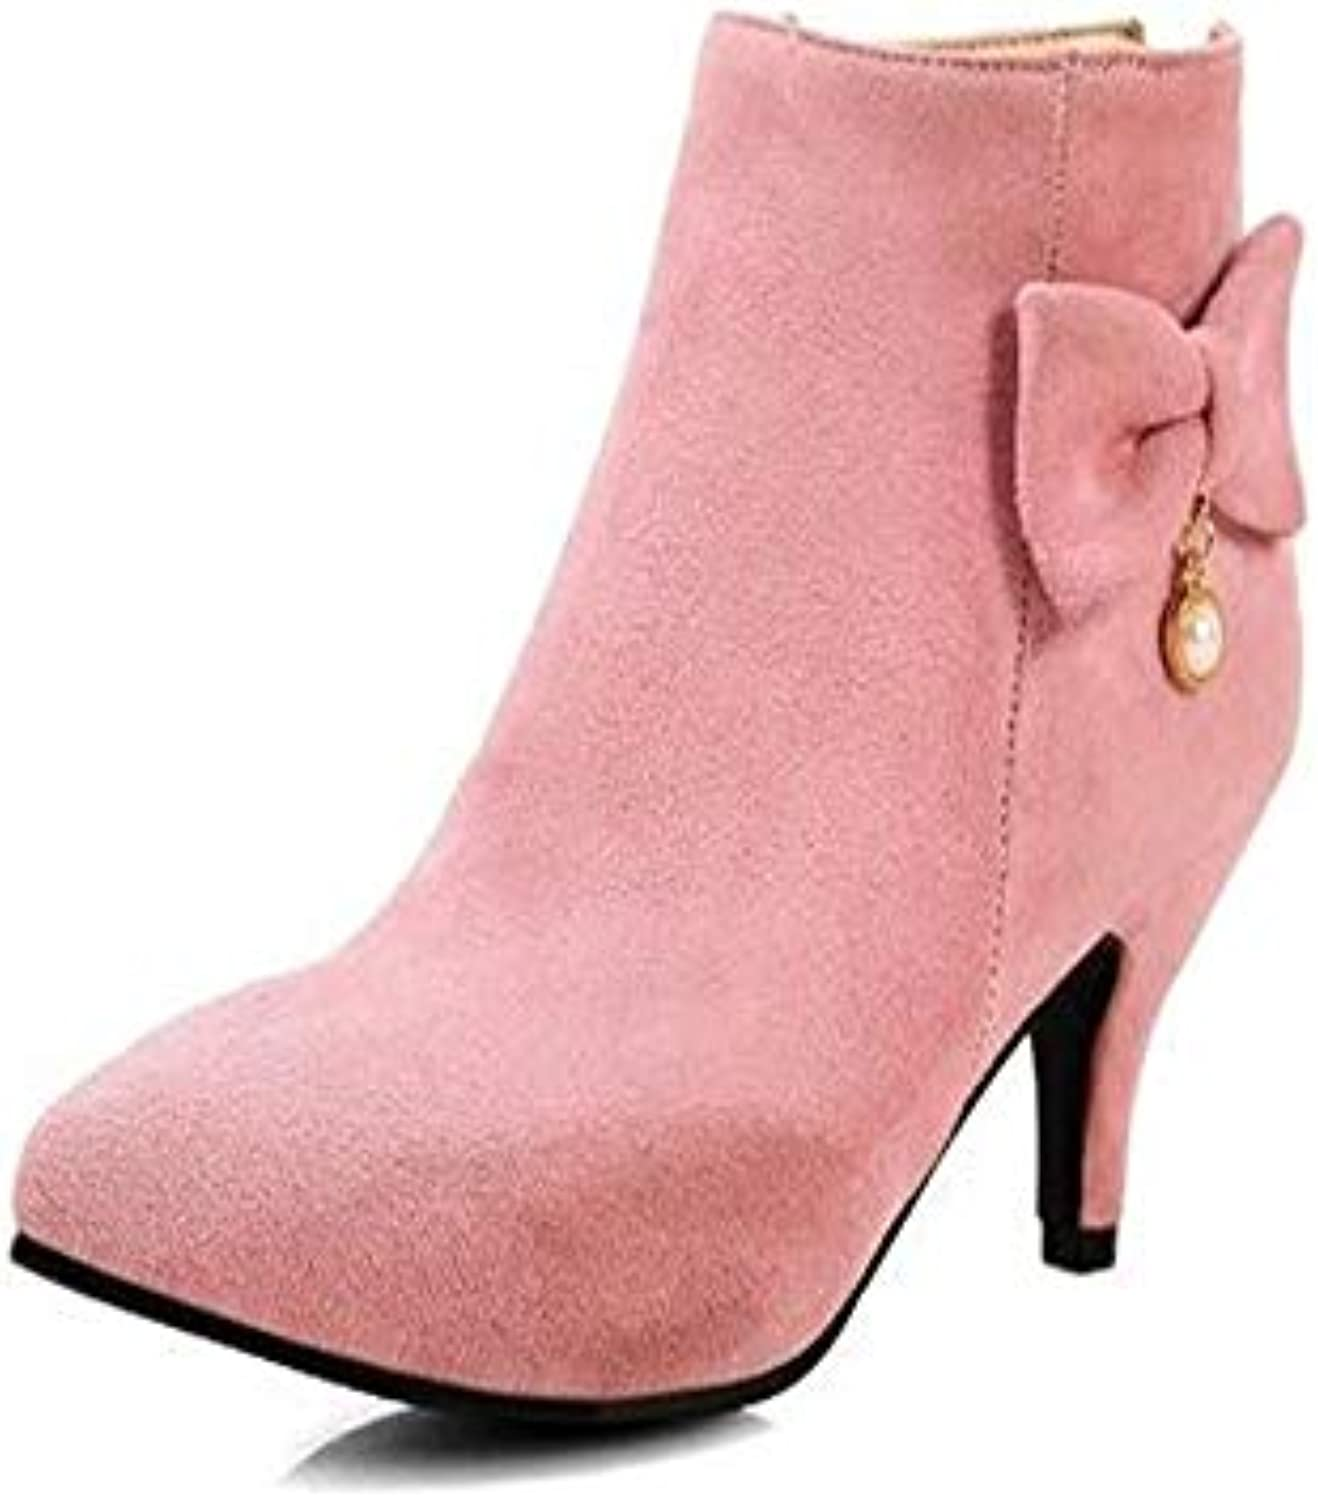 f0072bbb763f HCBYJ High heels Women s boots autumn and winter warm fashion fashion  fashion zipper bow ankle boots pink high-heeled Martin shoes B07H2FWNP4  Parent 670dd4